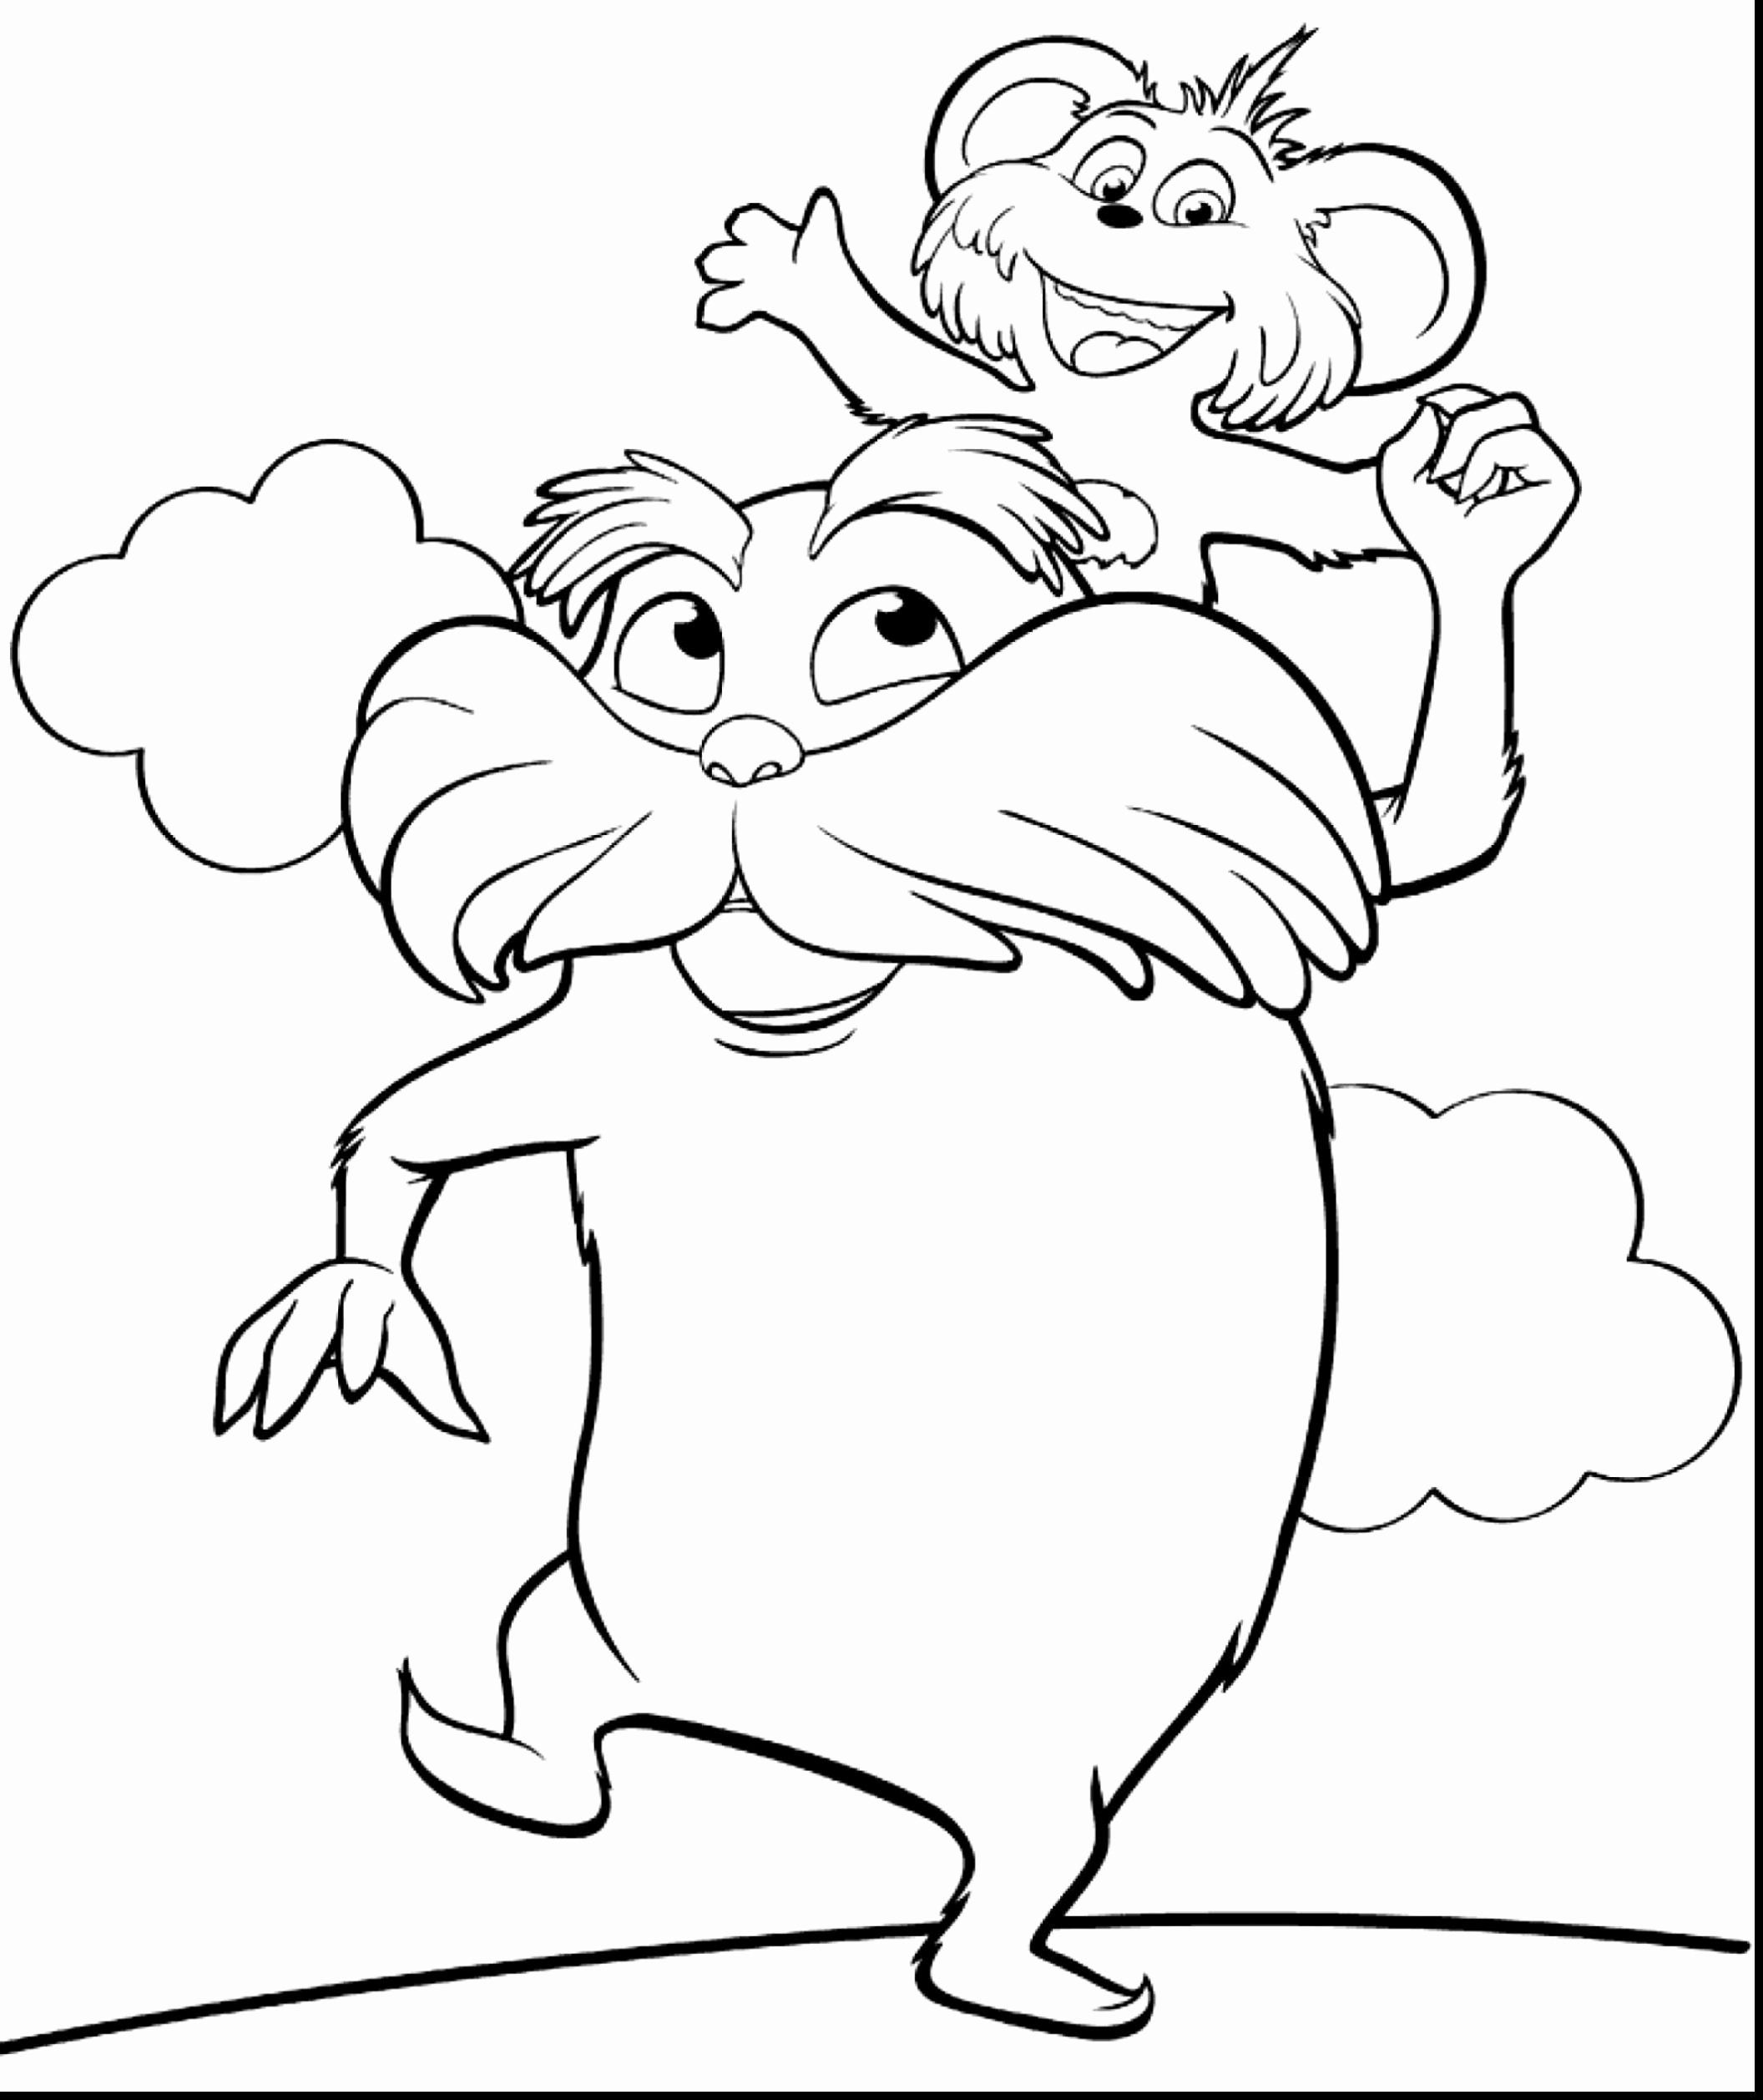 Fox In Socks Coloring Page Lovely Sock Coloring Page At Getcolorings In 2020 Dr Seuss Coloring Pages Panda Coloring Pages Valentines Day Coloring Page